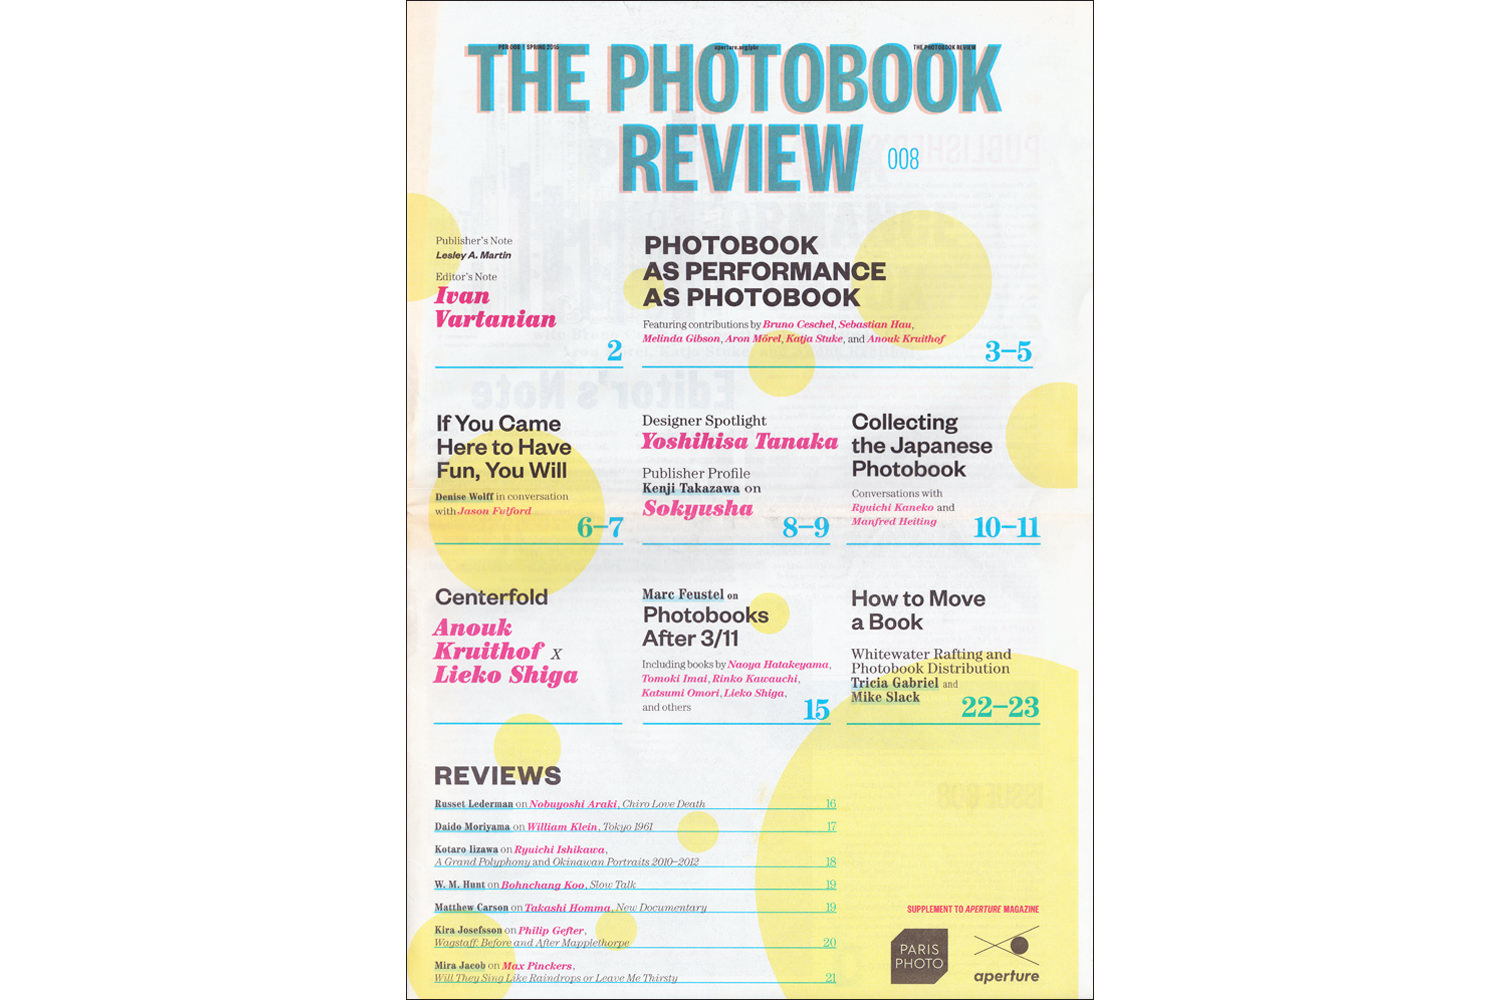 The Photobook Review